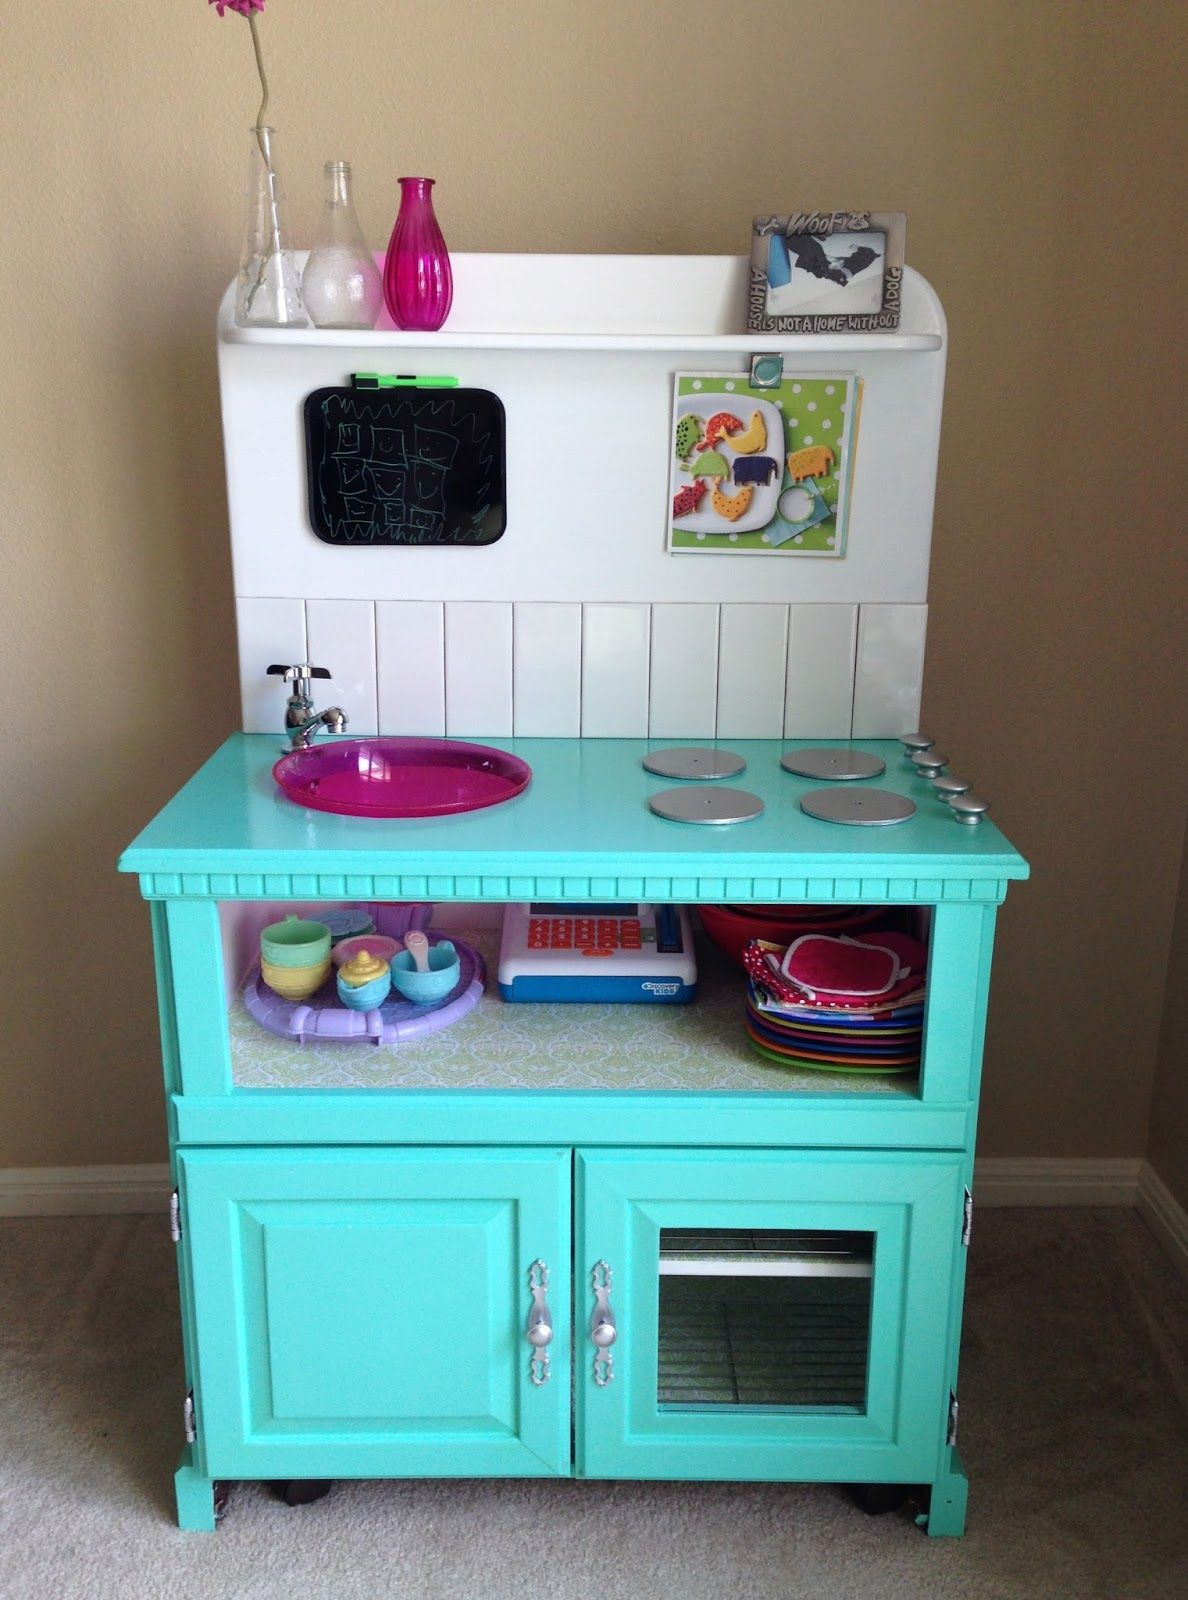 Finally! The DIY play kitchen is done! Diy play kitchen